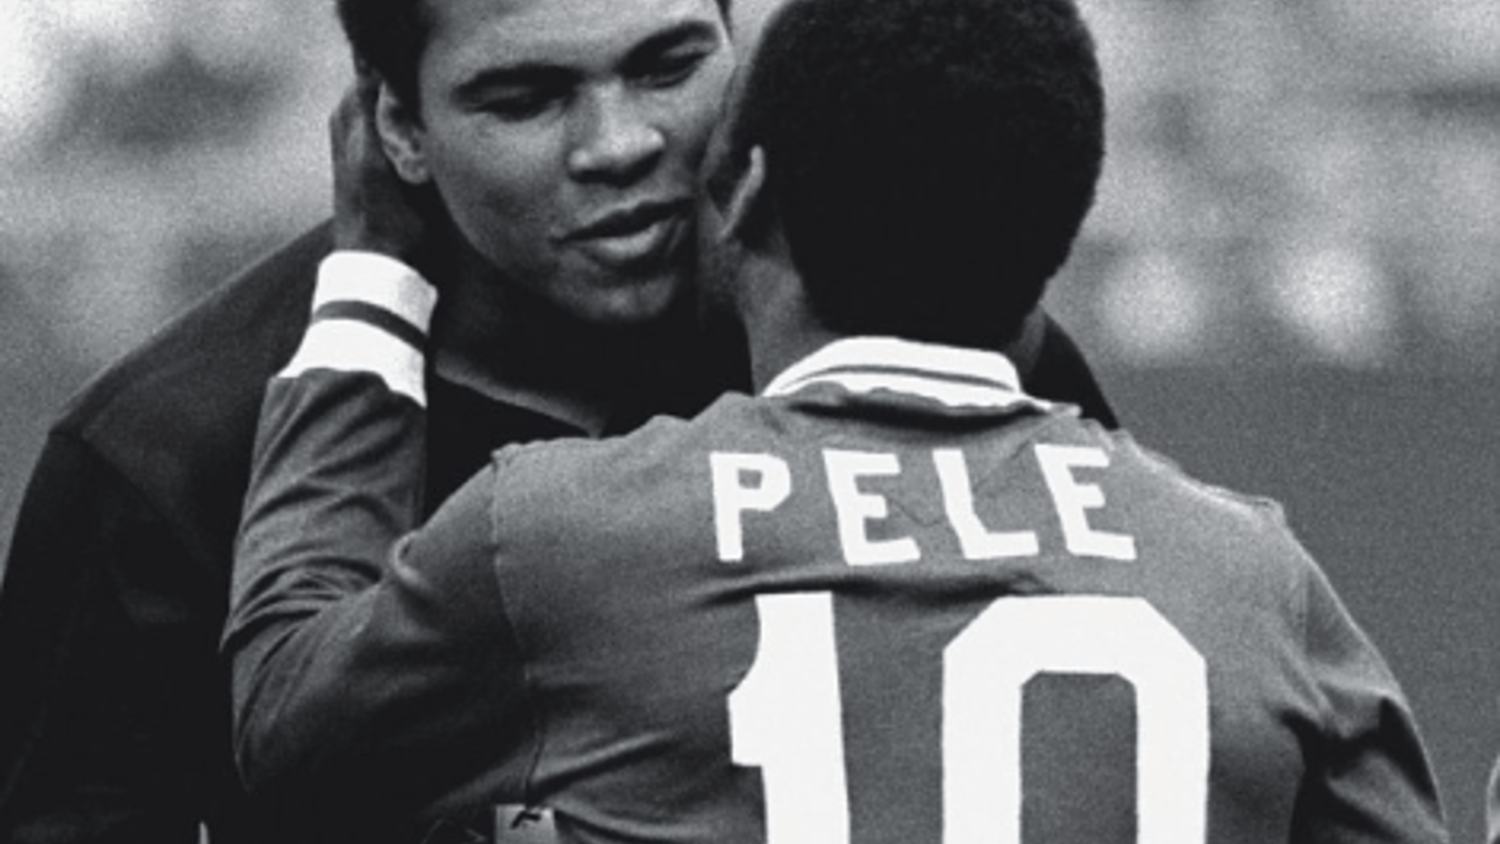 PELE AND HIS SECRET LOVERS